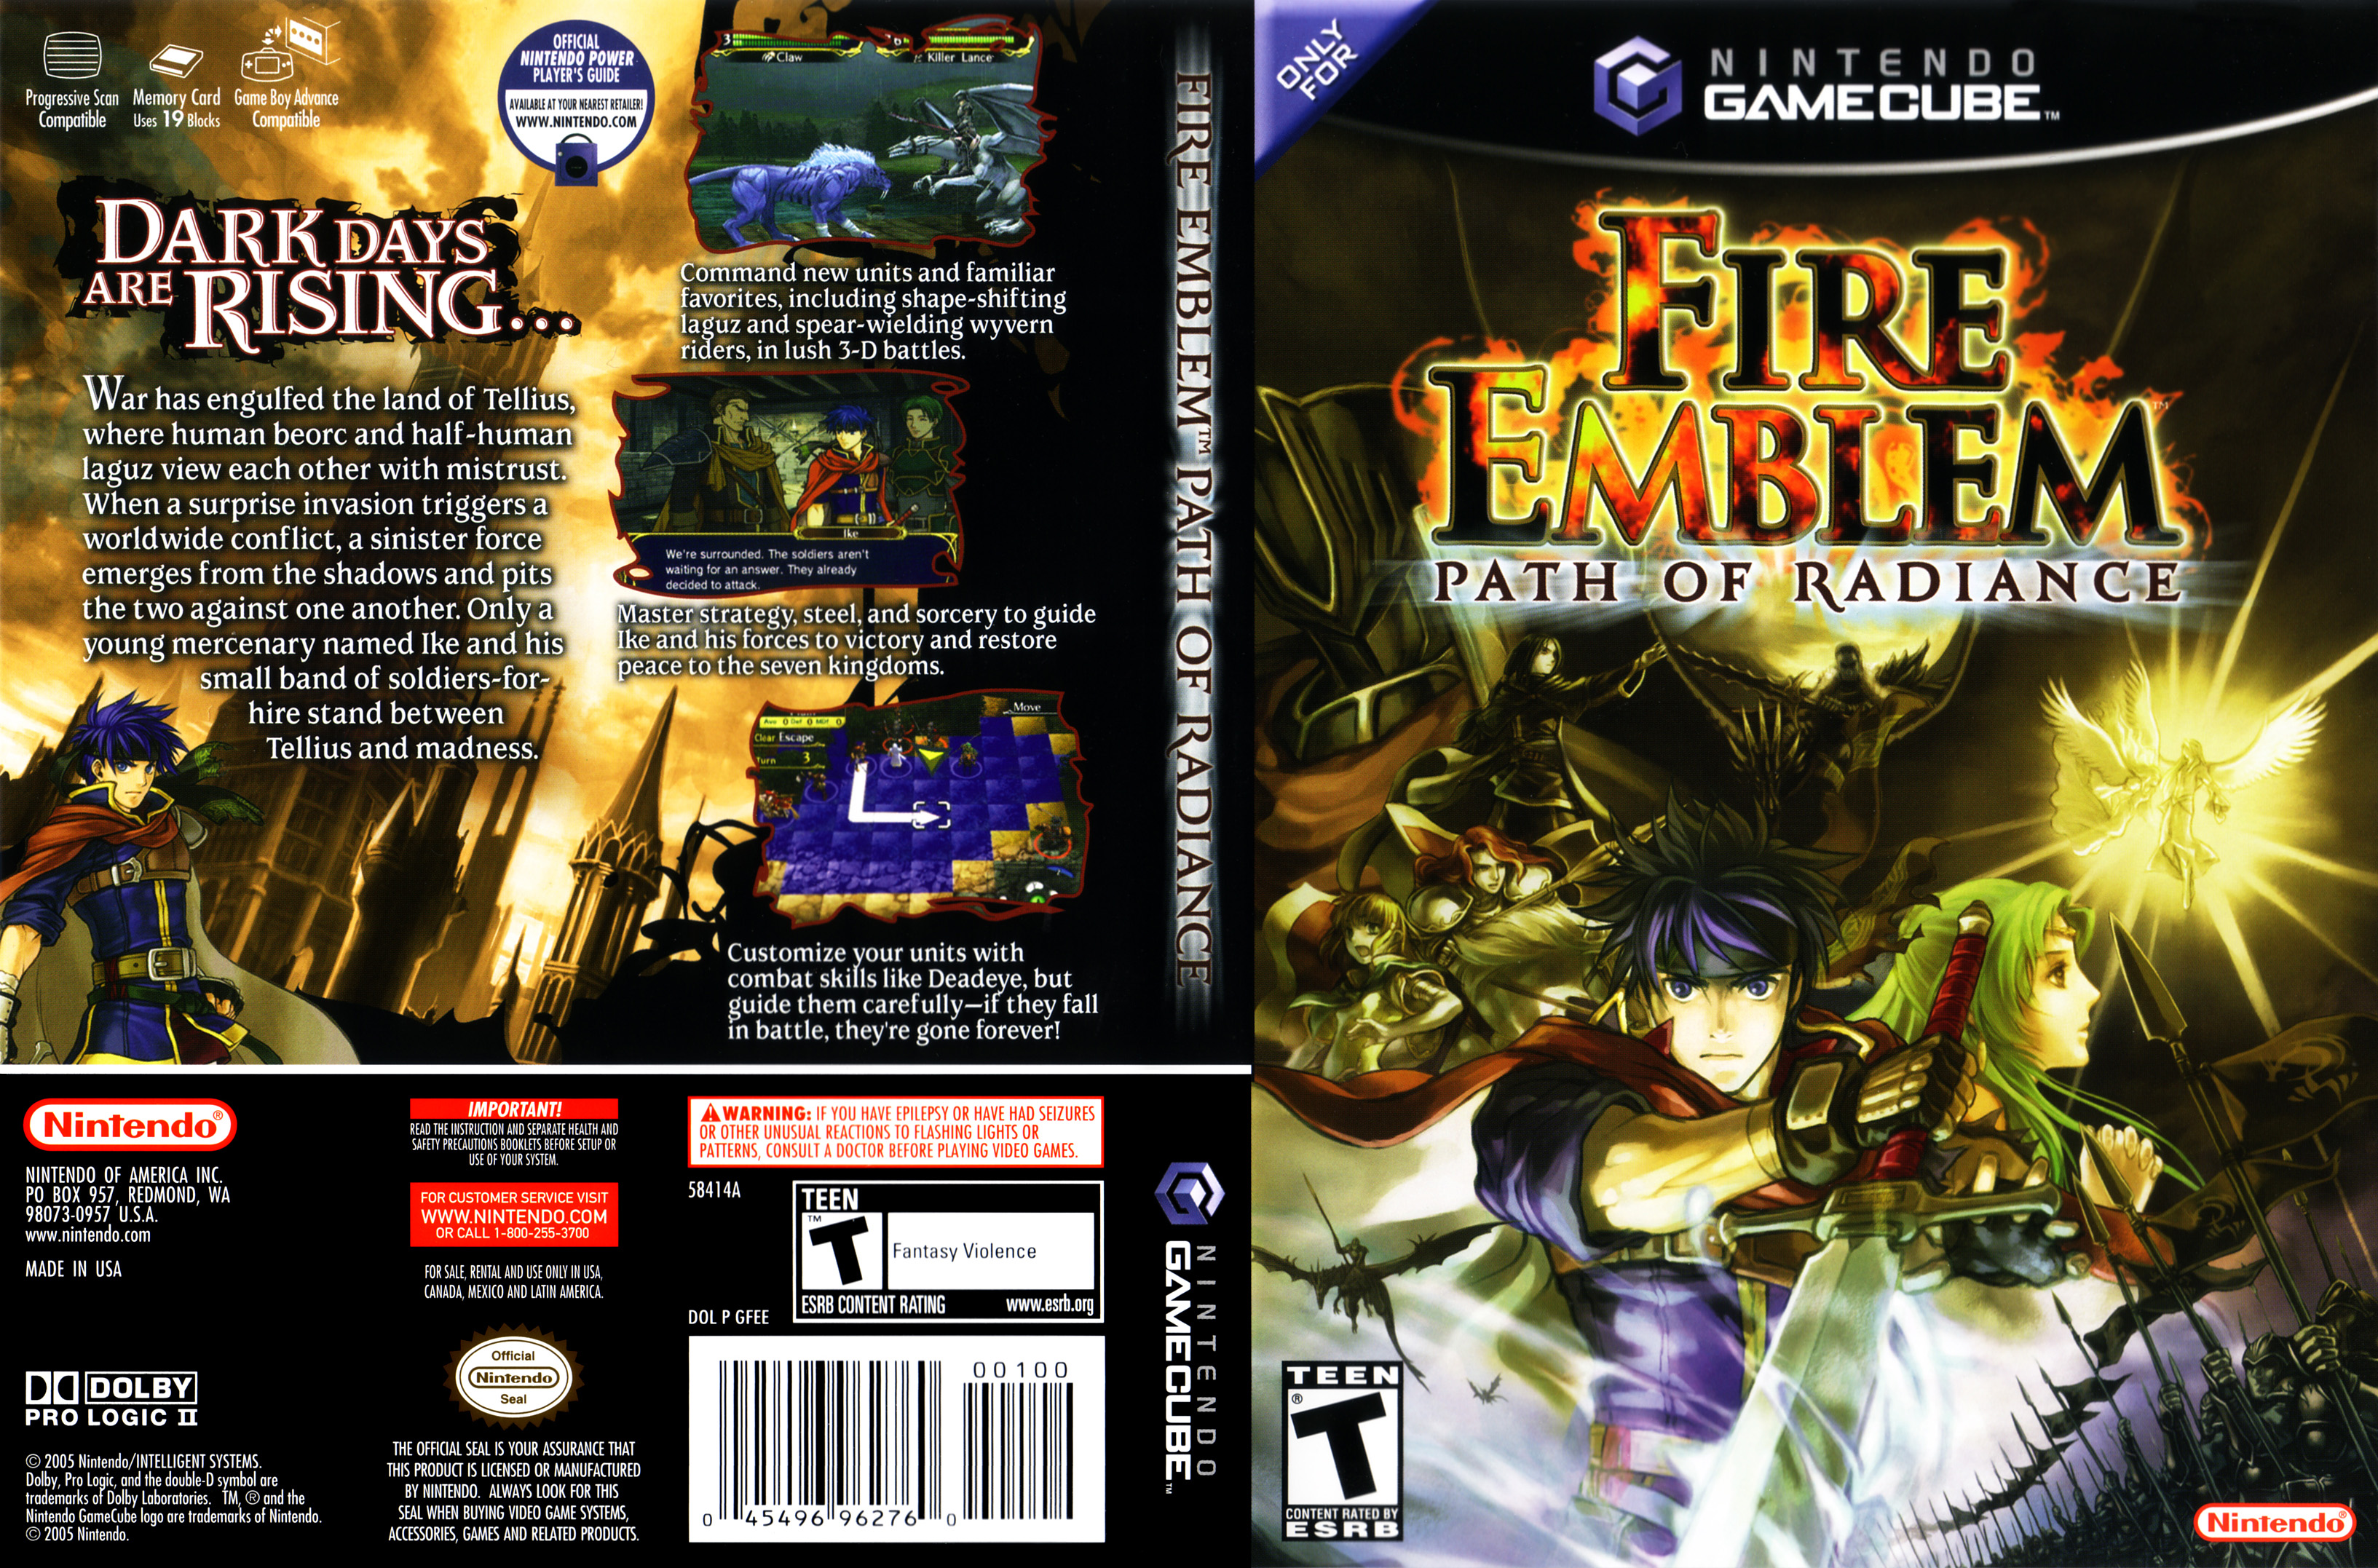 gamecube emulator pc download